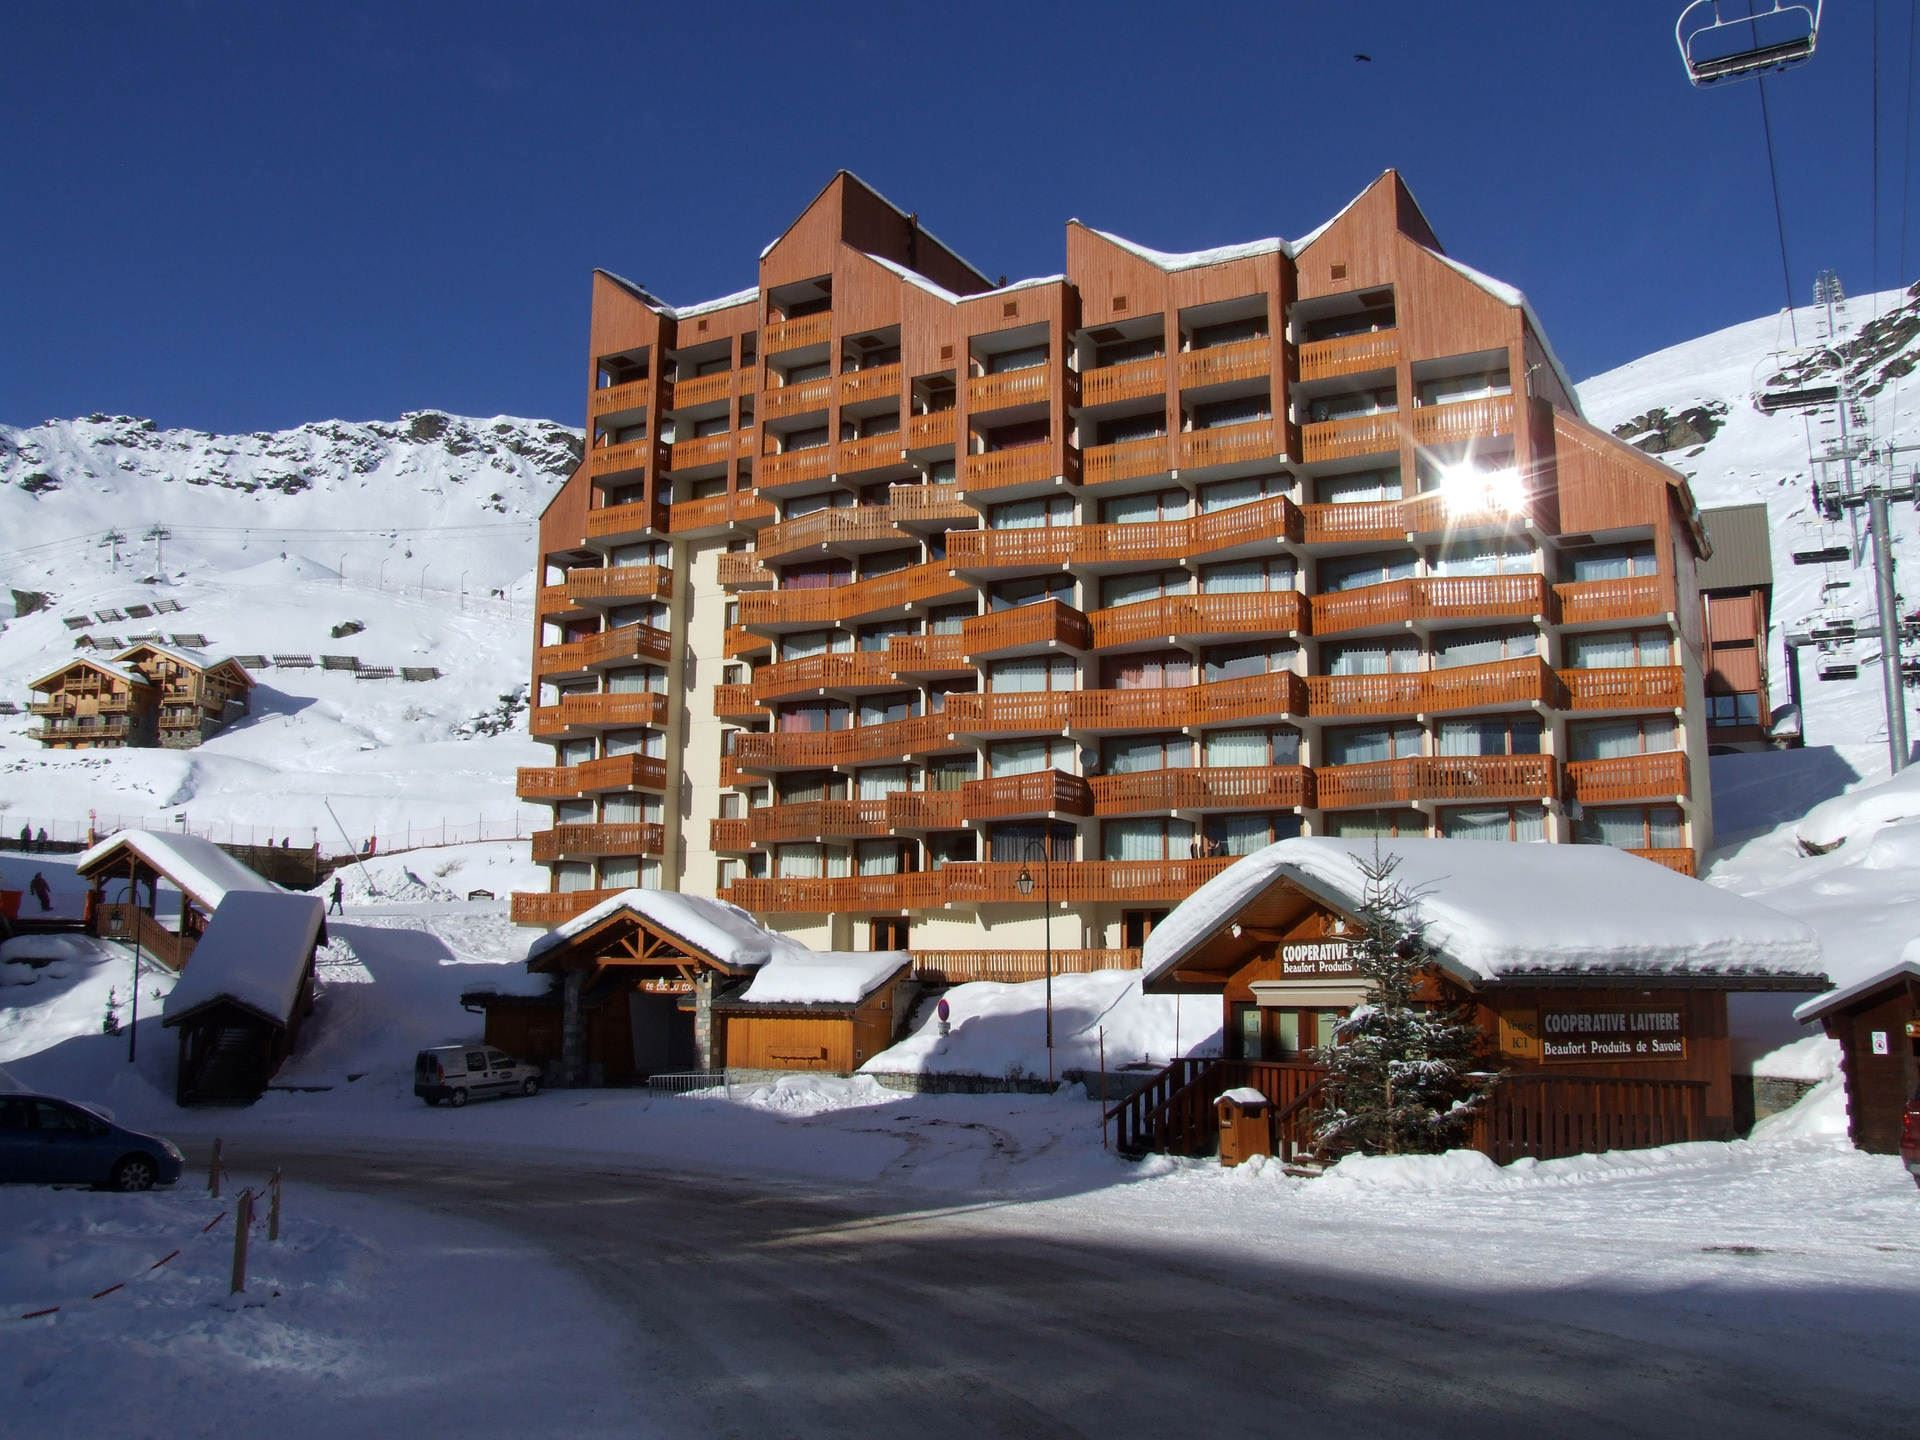 LAC DU LOU 1 / 2 ROOMS 4 PERSONS - 2 SILVER SNOWFLAKES - VTI